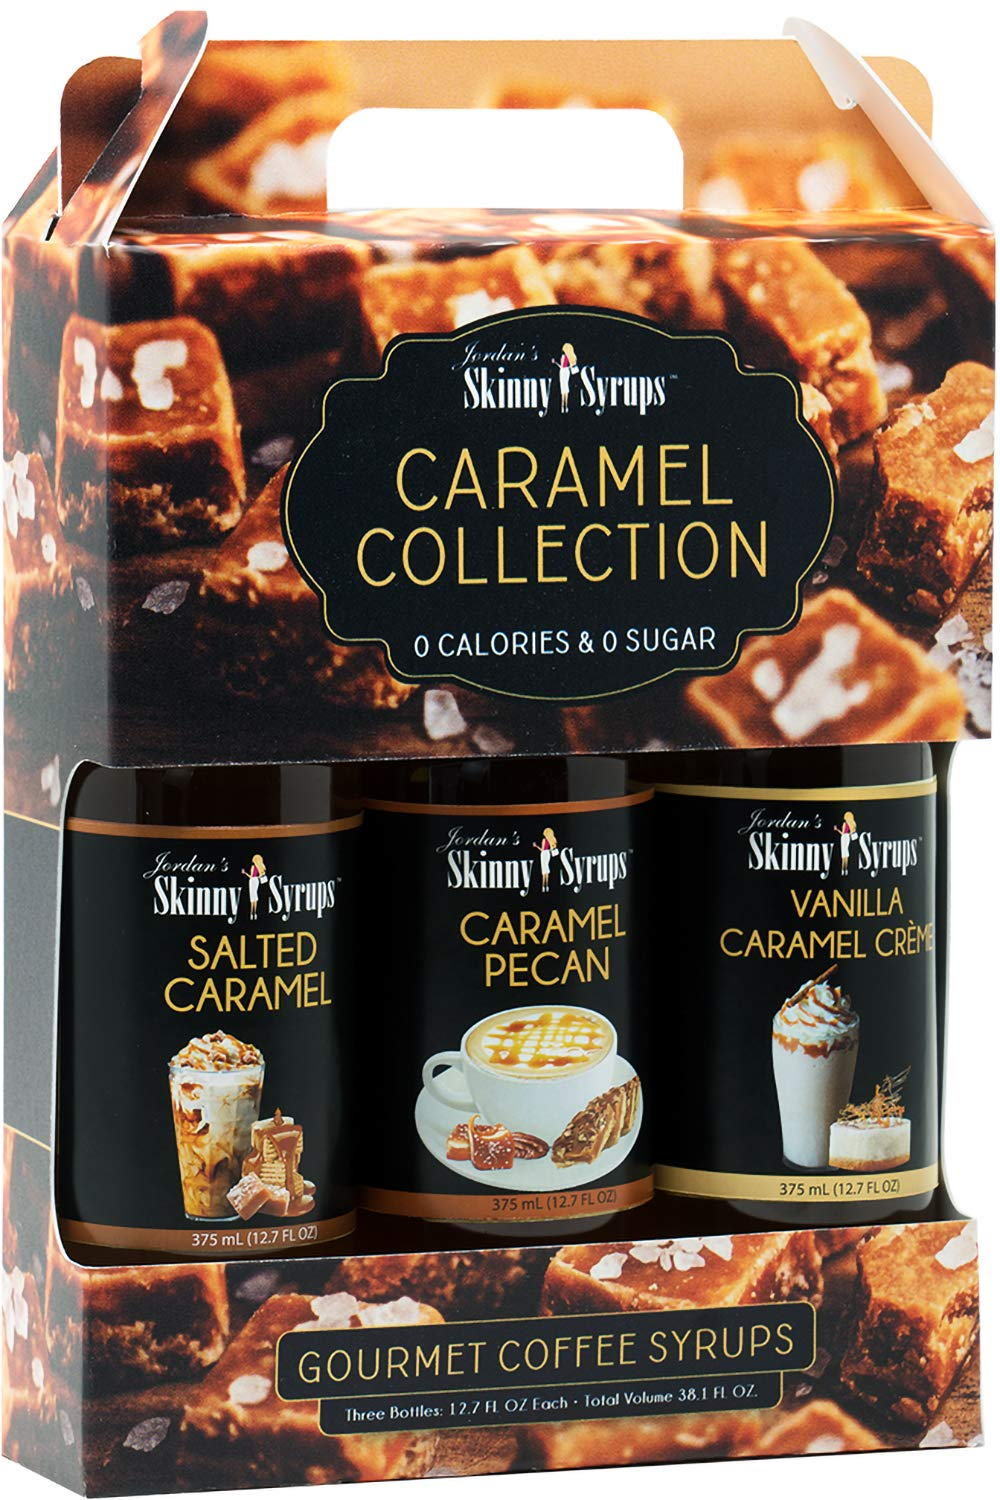 Jordan's Skinny Syrups |Caramel Collection Syrup Trio| Healthy Flavors with 0 Calories, 0 Sugar, 0 Carbs |12.7oz Bottles - Pack of 3